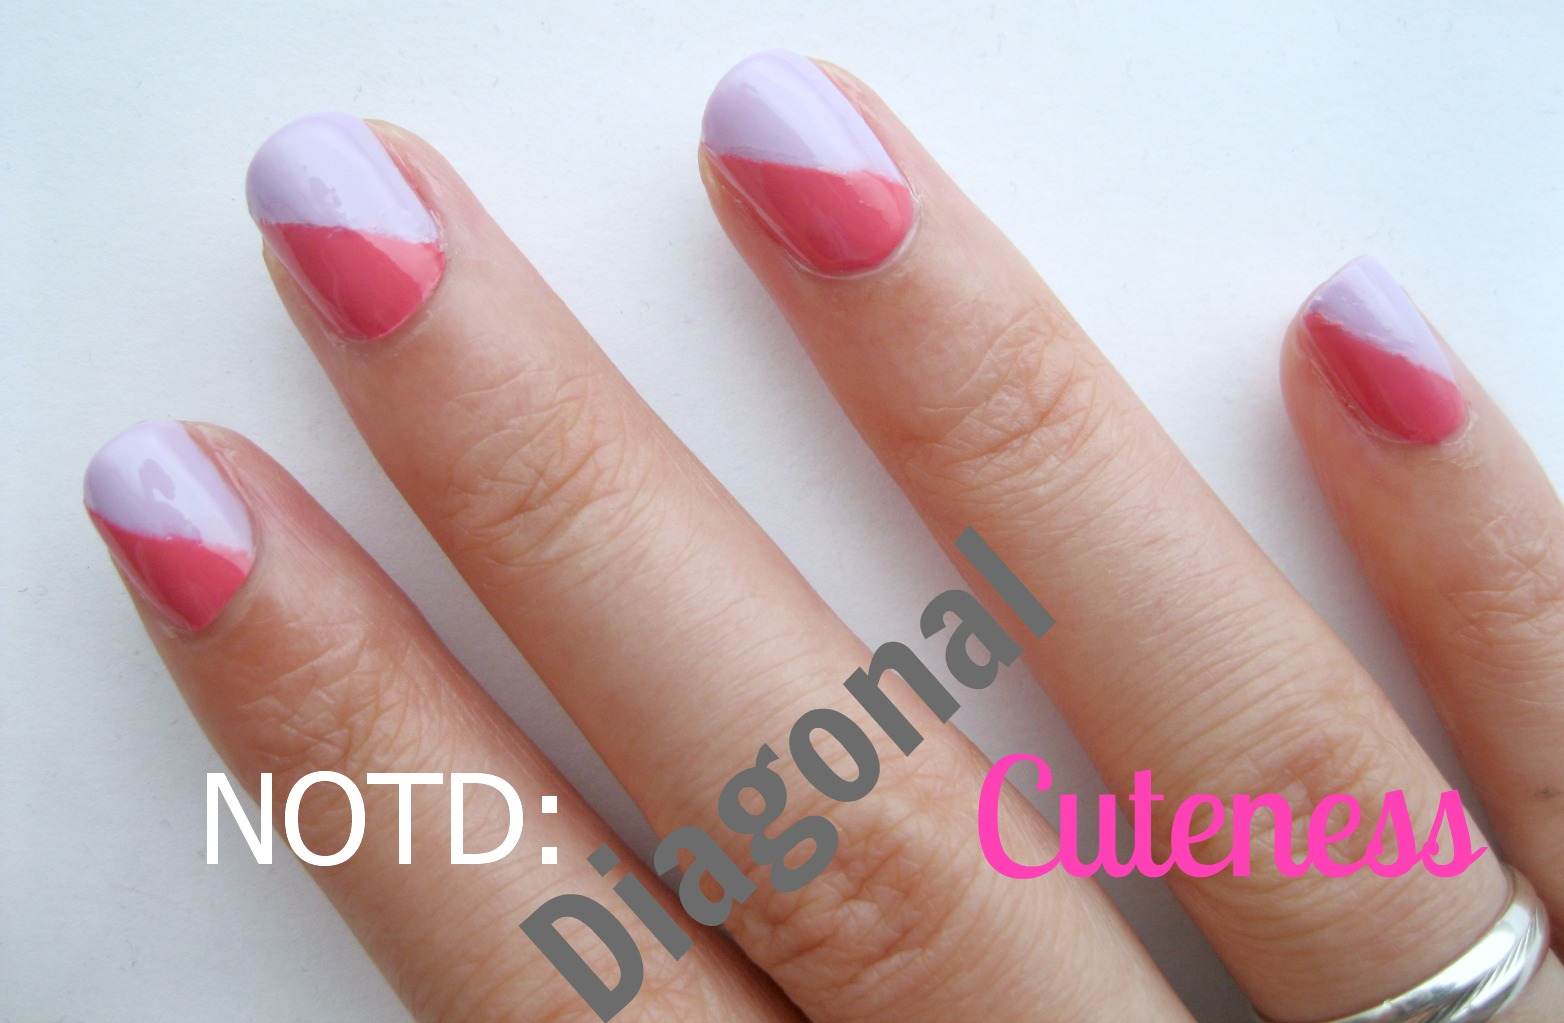 NOTD: Diagonal Cuteness